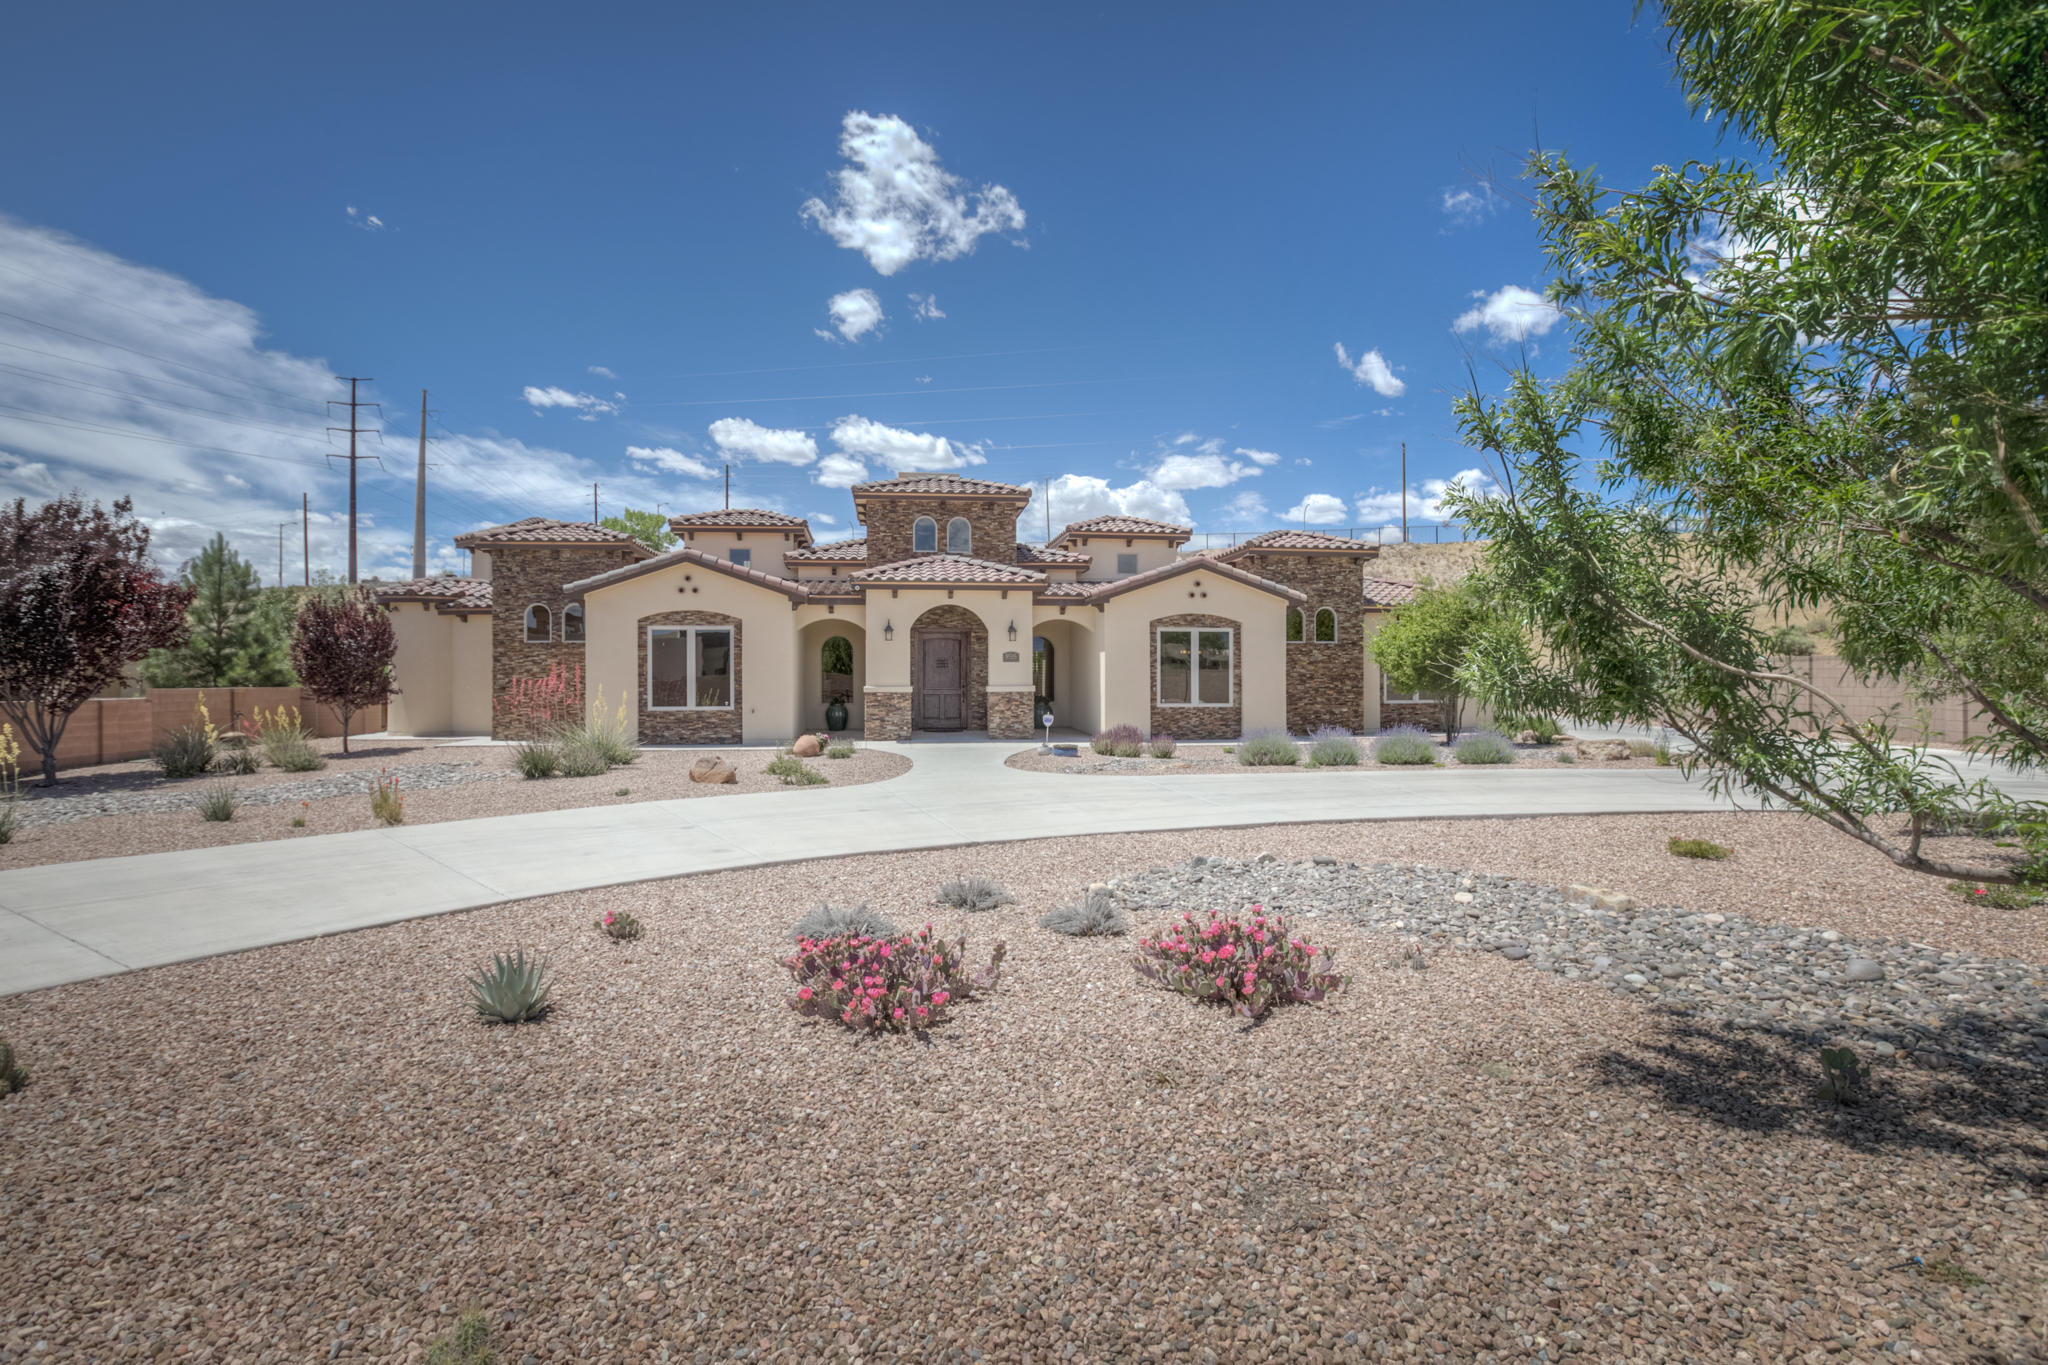 9515 LYNDALE LANE NW, ALBUQUERQUE, NM 87114